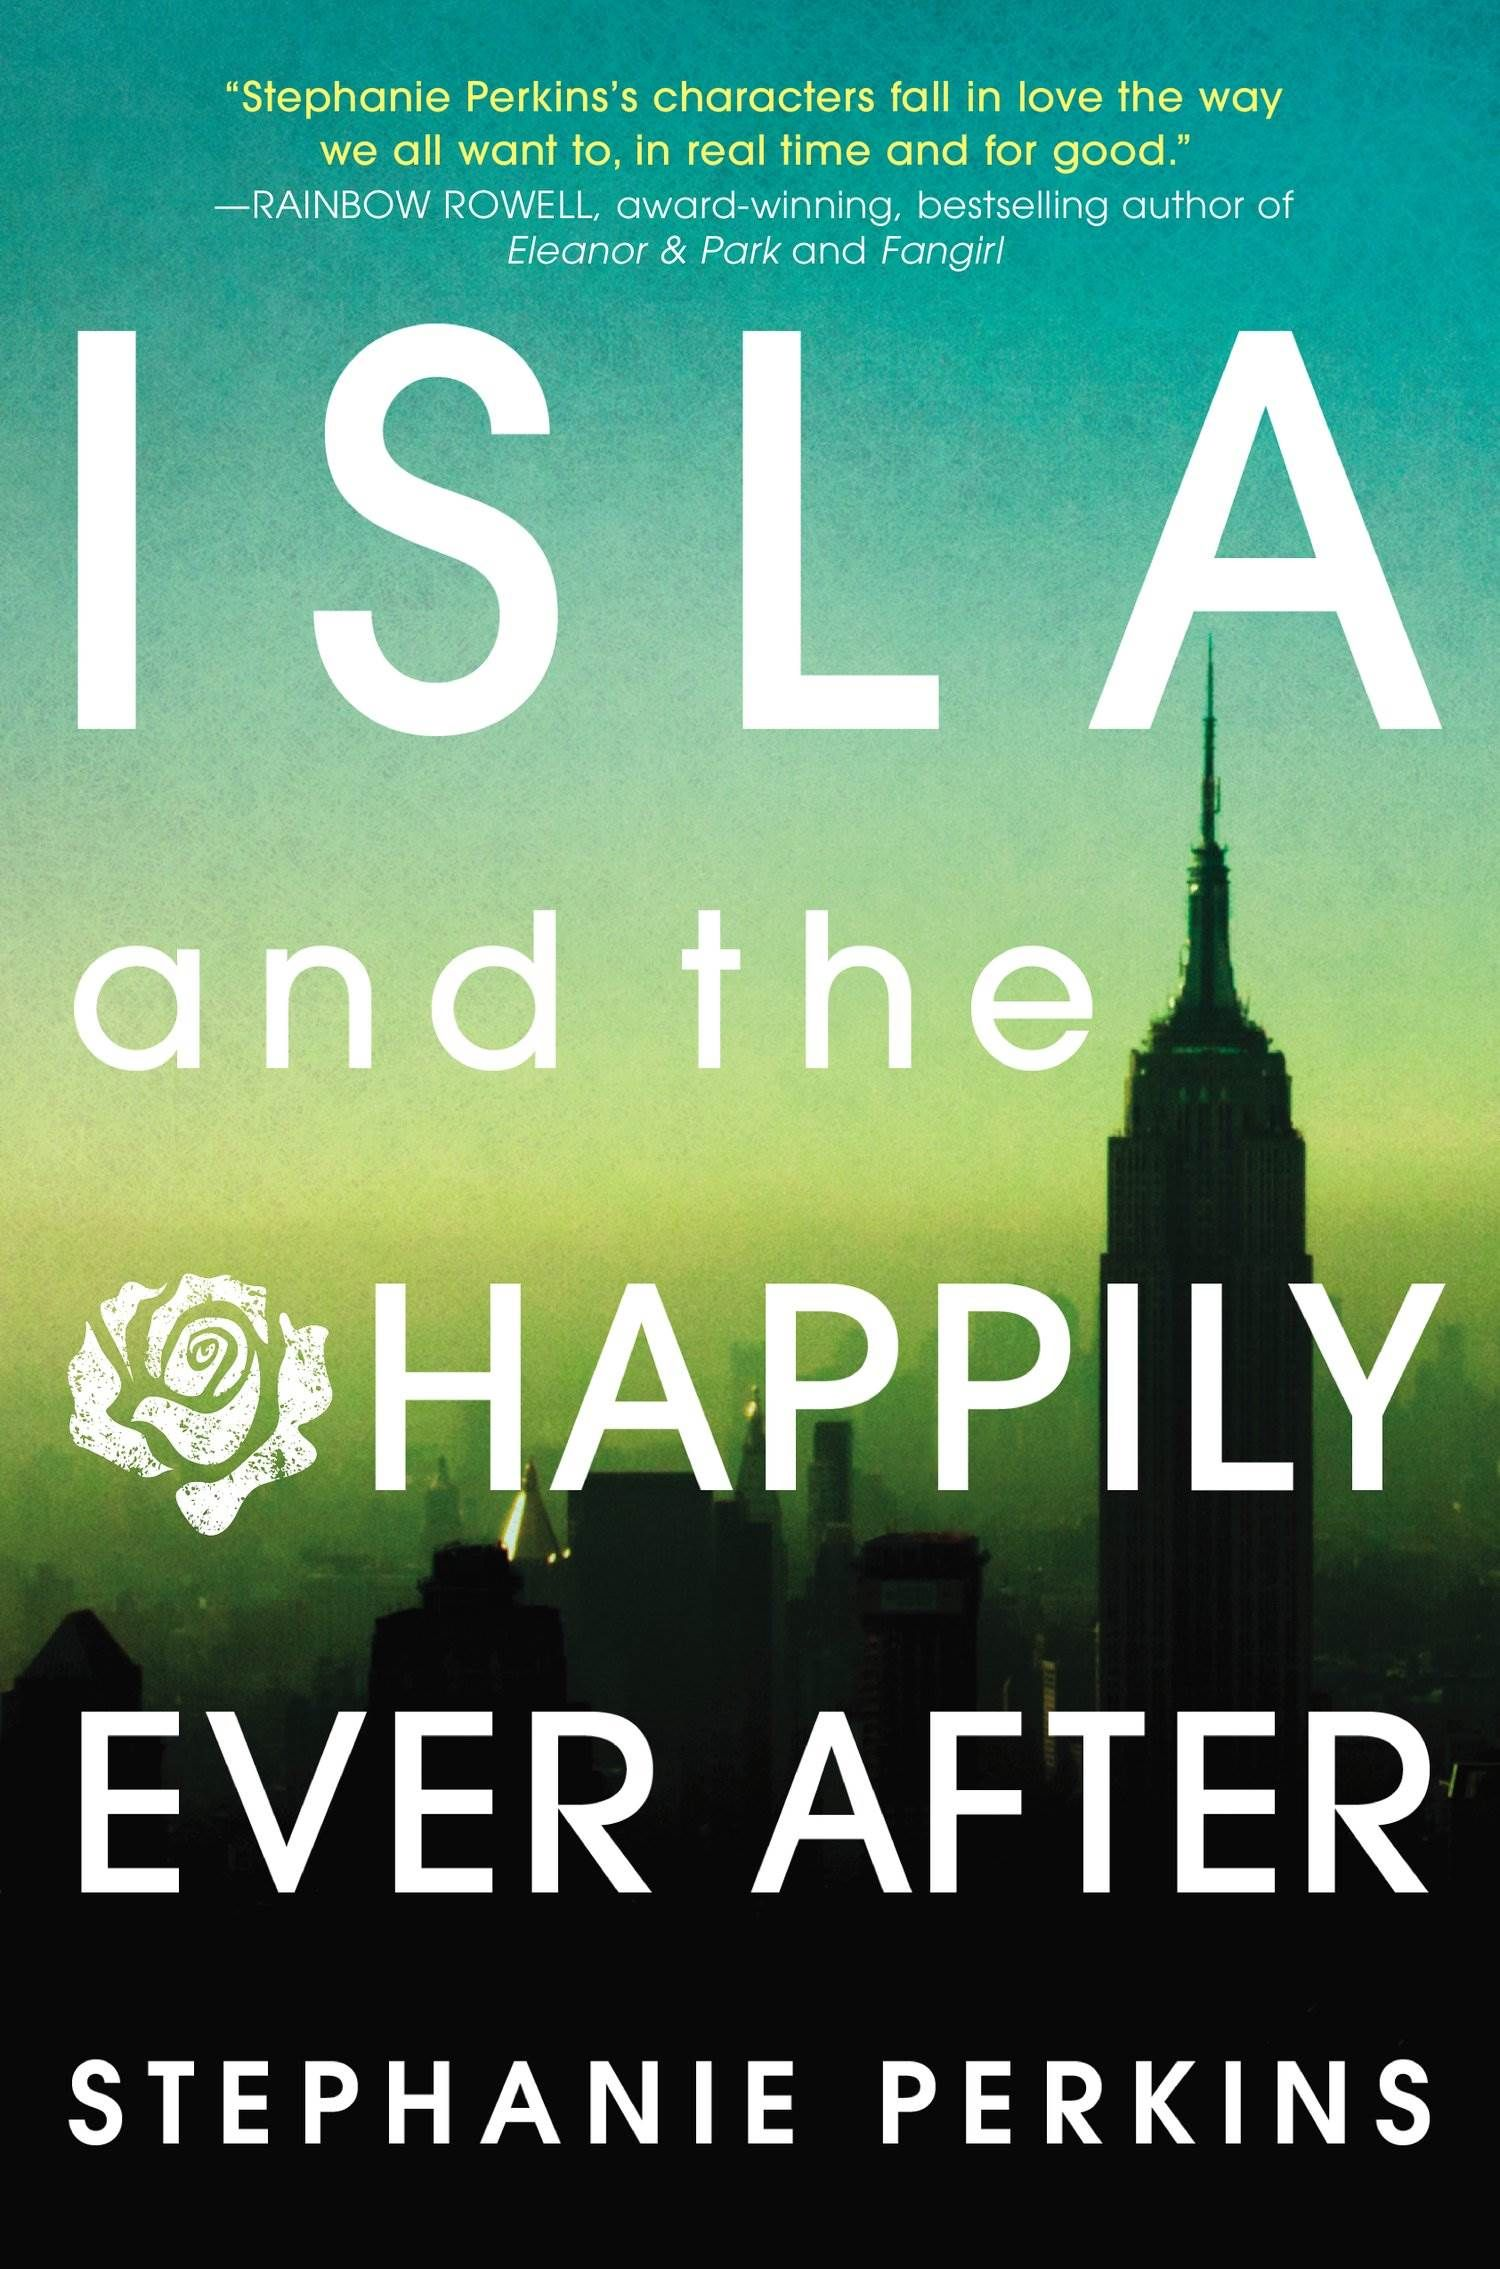 Stephanie Perkins - Isla and the Happily Ever After